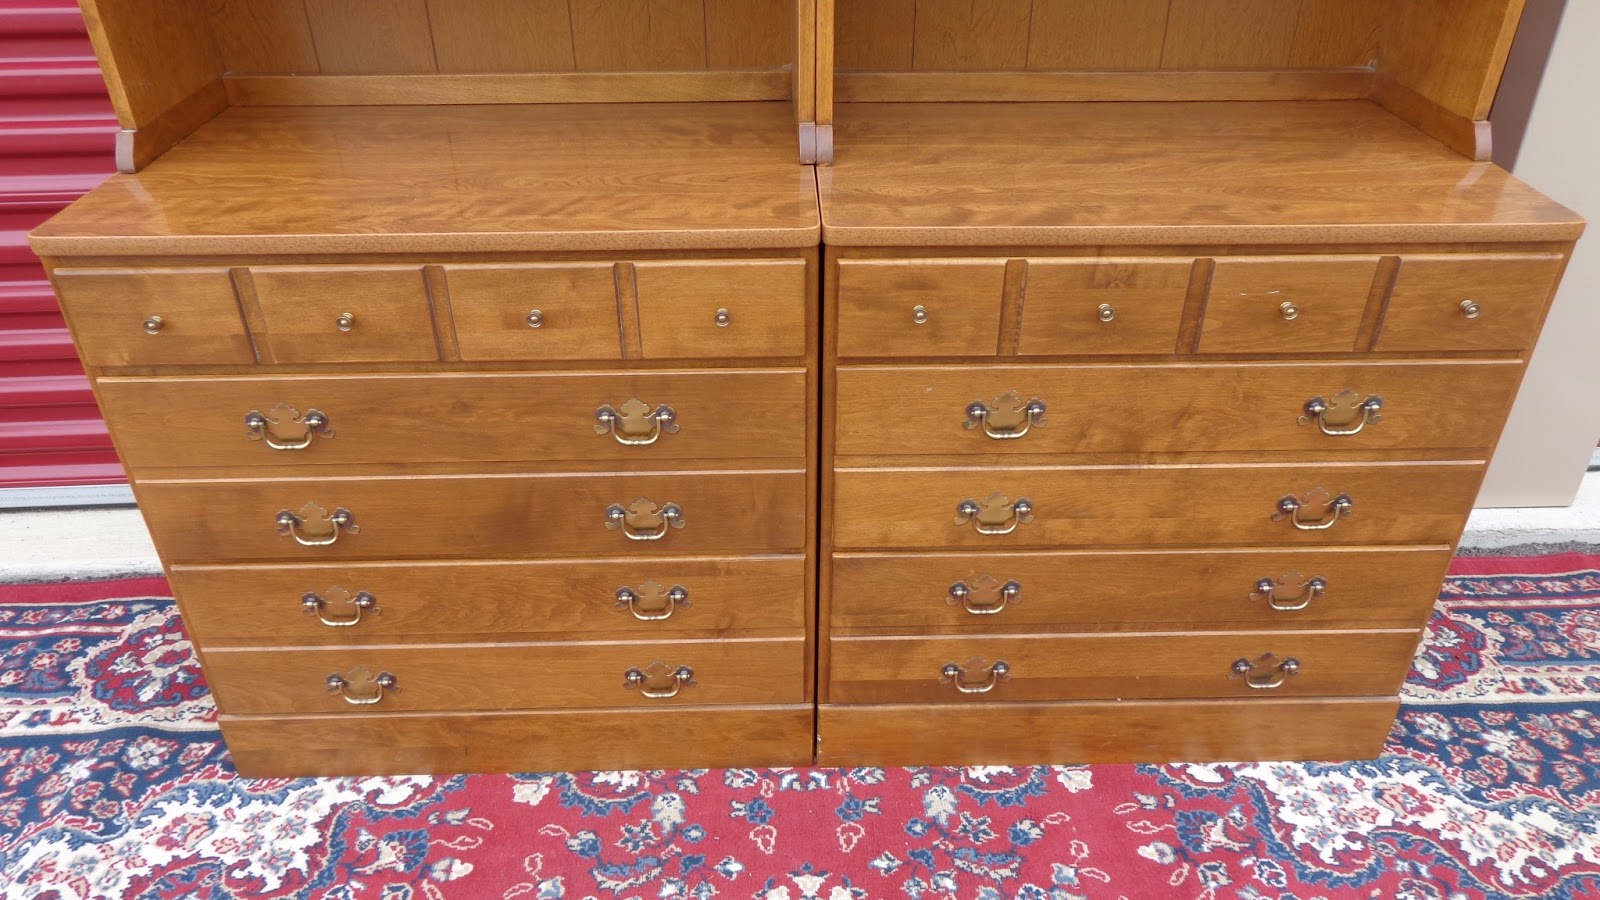 Heirloom Ethan Allen Bedroom Set EBay